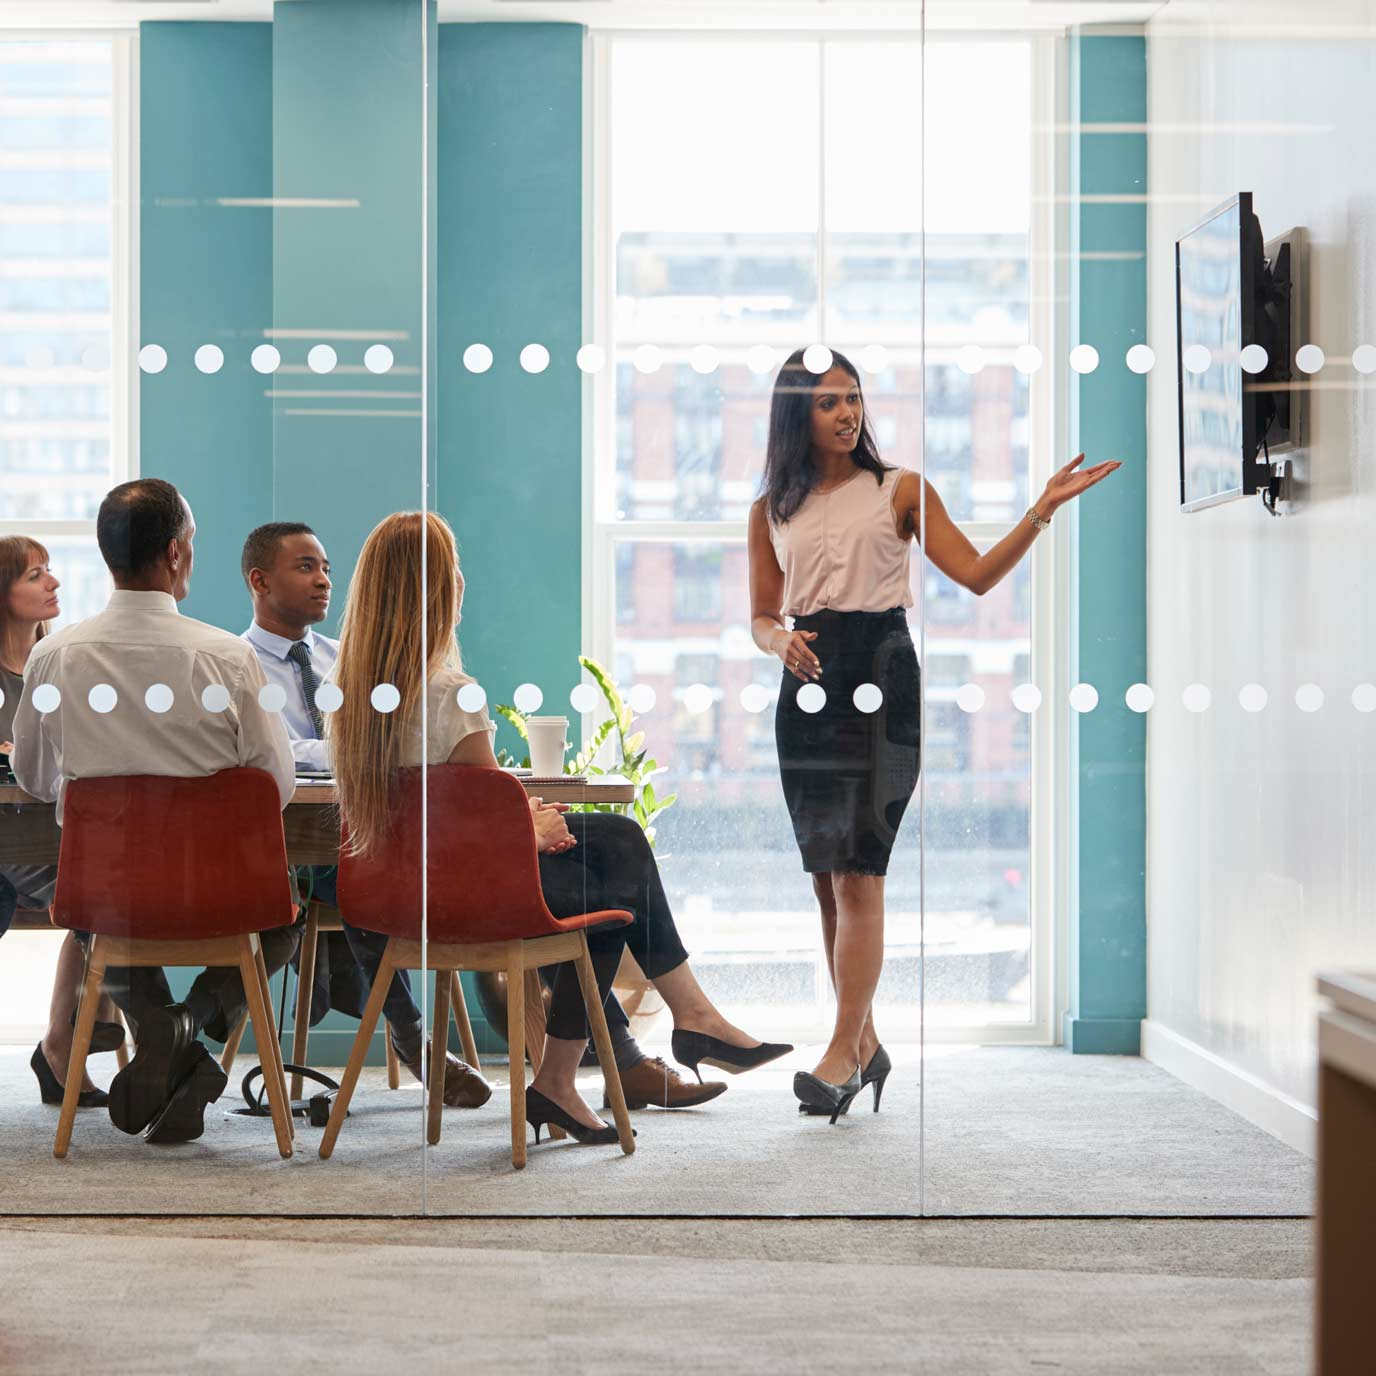 Read about how menopause can impact women at work and how you can tackle it with your boss